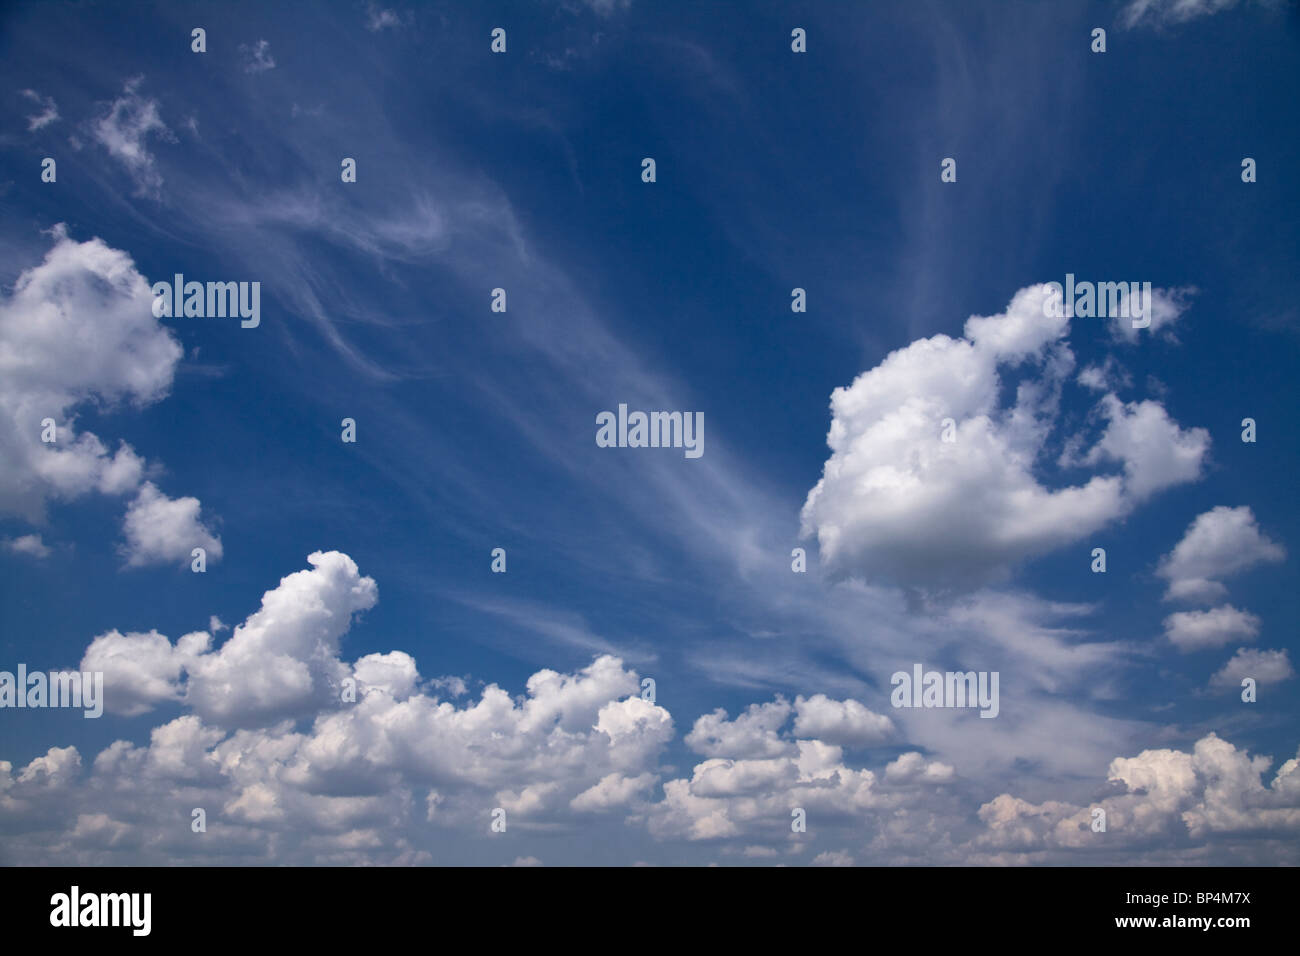 Wonderful blue dramatic sky, with some white clouds. - Stock Image